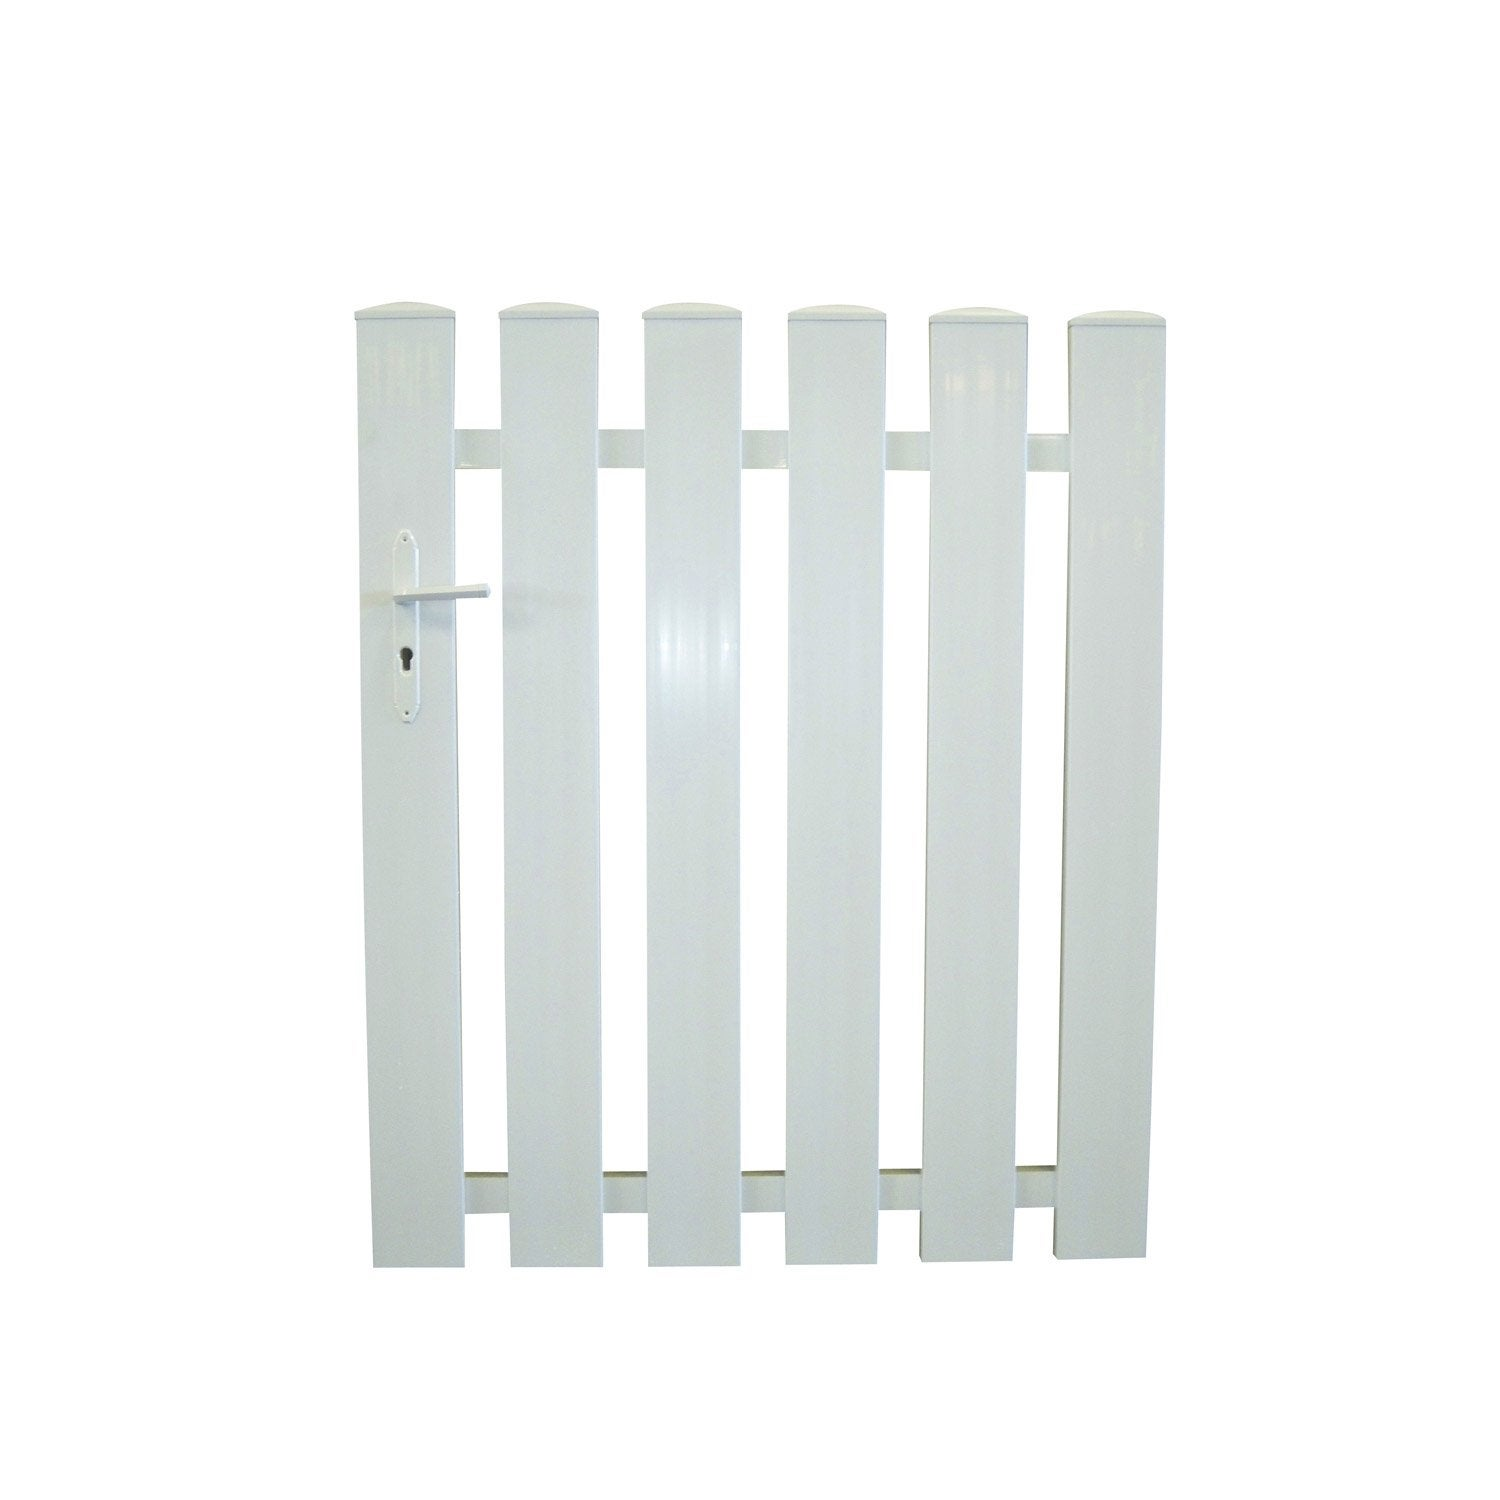 Portillon pvc blanc pas cher for Portillon pvc pas cher